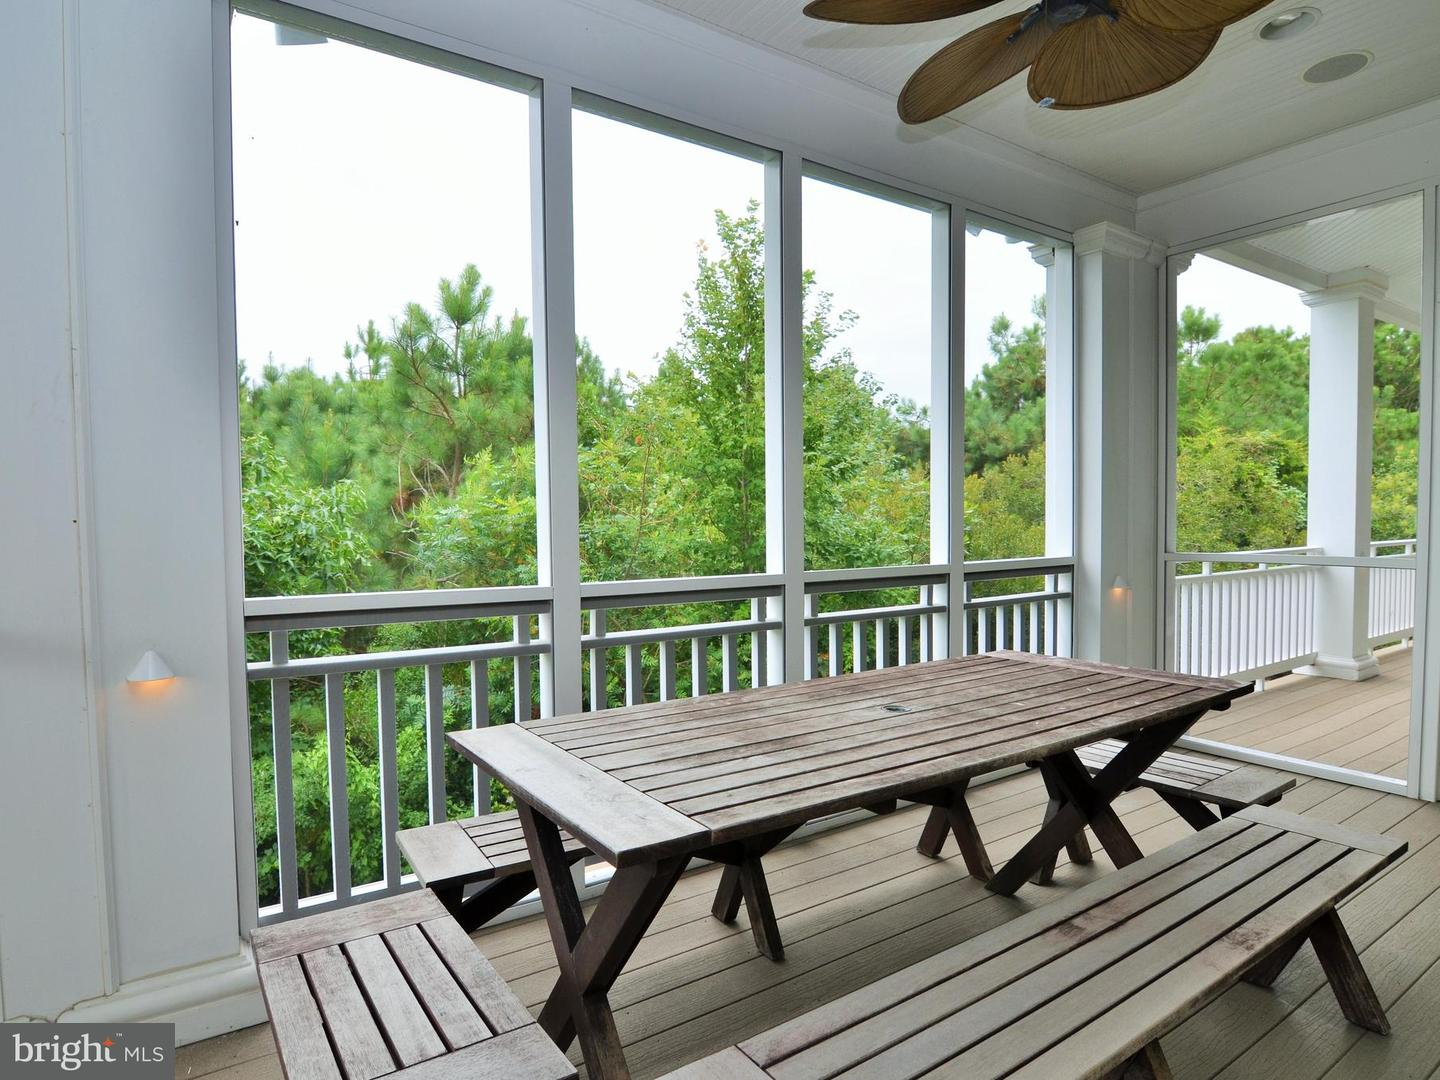 1002293530-300500807471-2018-09-25-15-08-25 31 Hall Ave | Rehoboth Beach, De Real Estate For Sale | MLS# 1002293530  - Suzanne Macnab